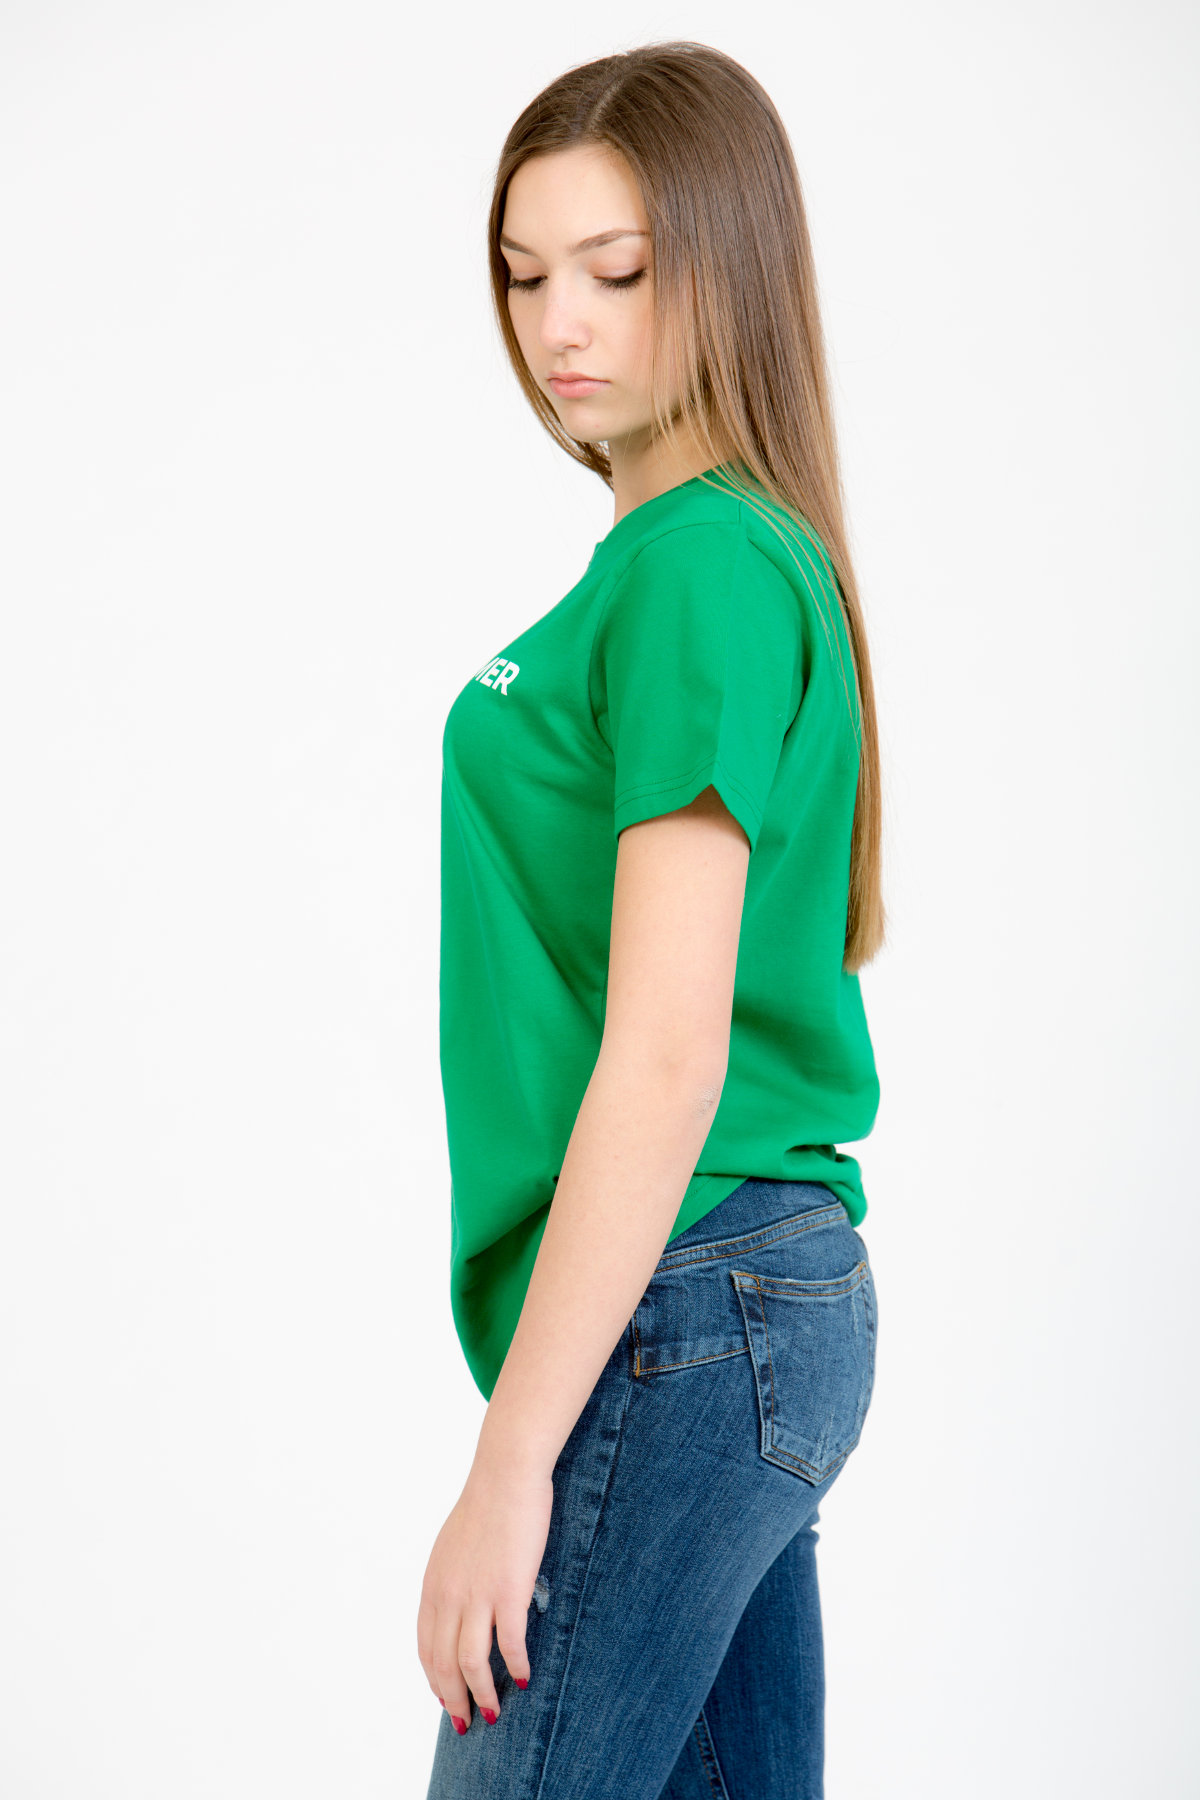 LERÊVERIES - T-shirt Donna Modern Dreamer Colore Verde - B